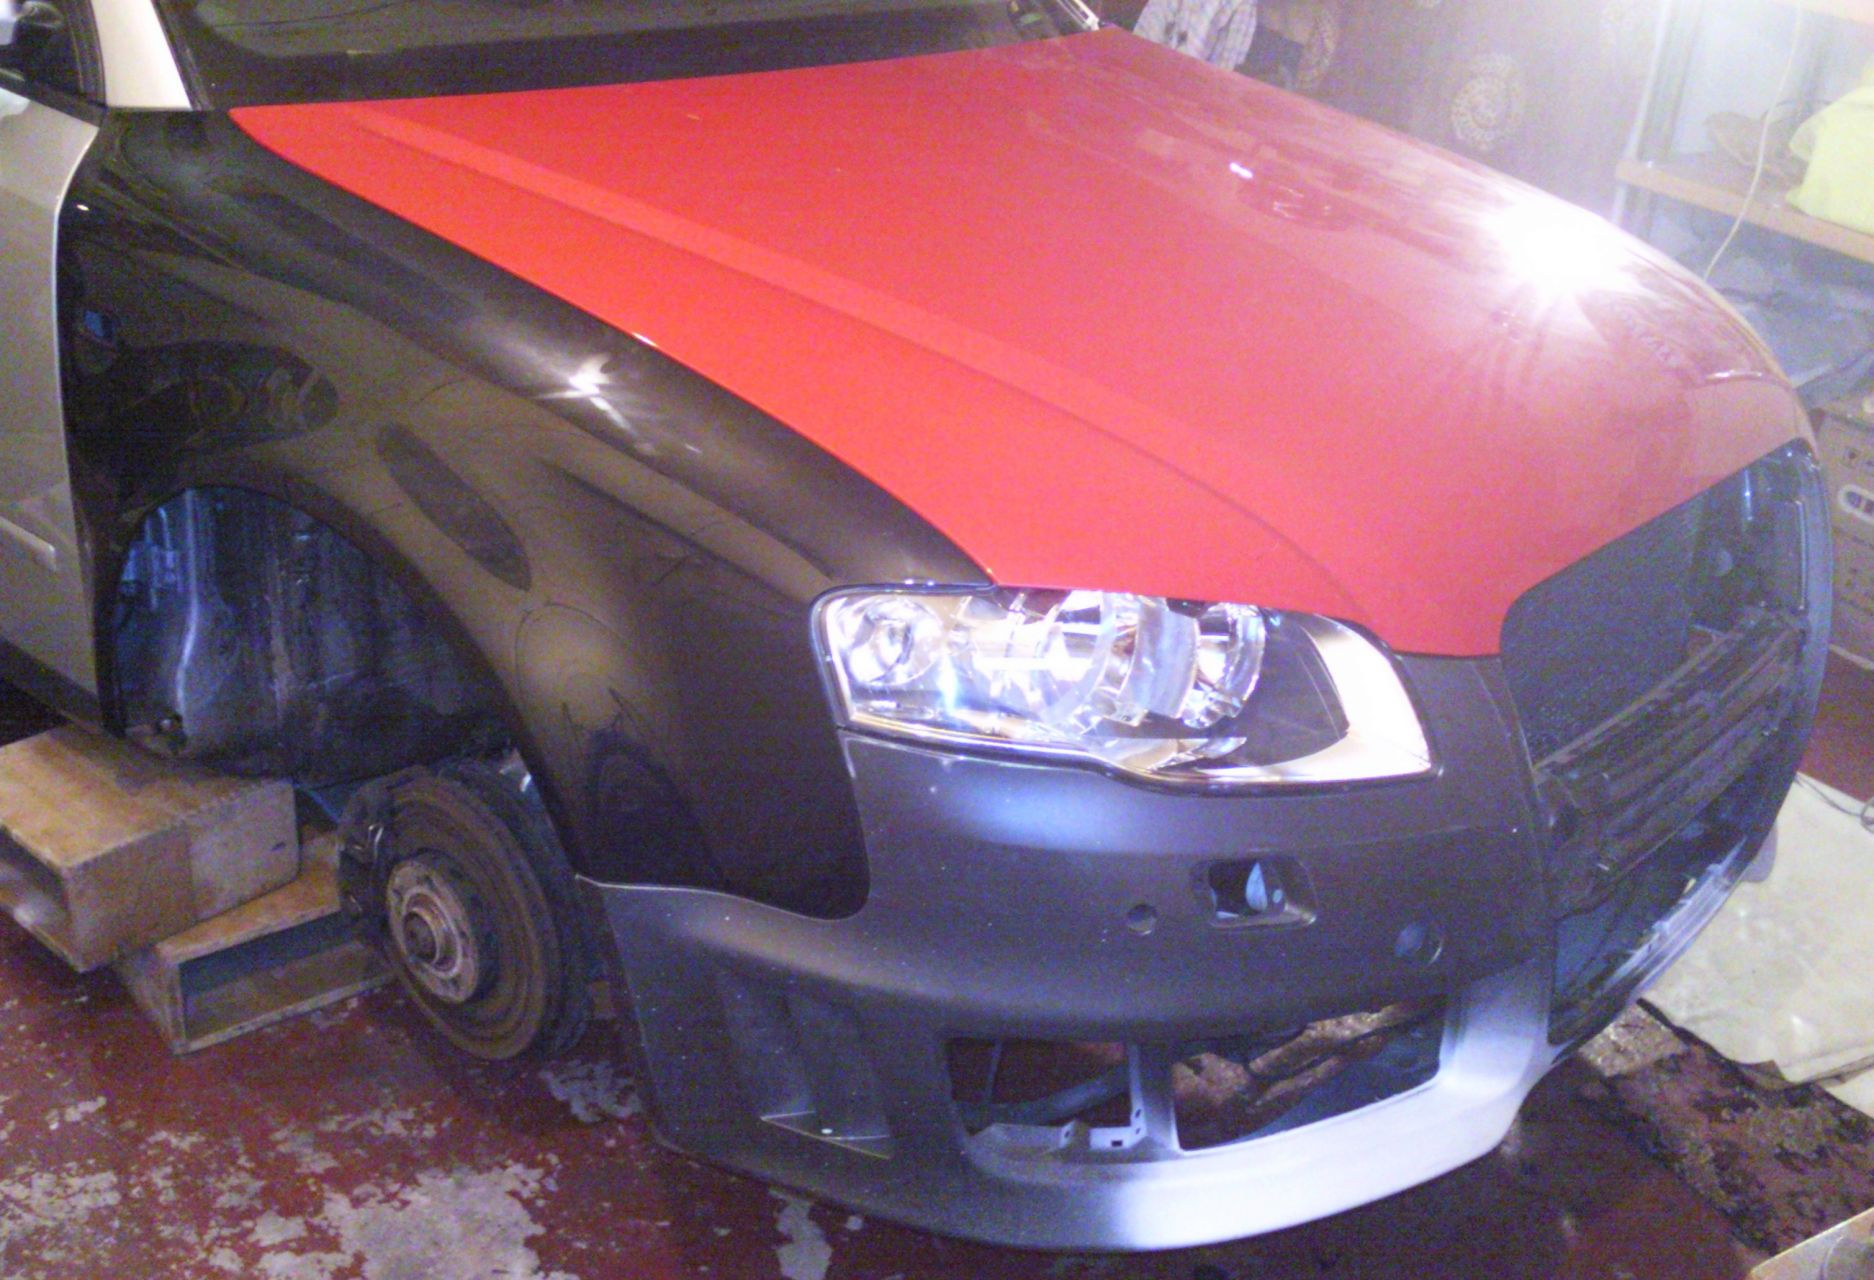 Audi A4 B6 To B7 Rs4 Widebody Replica Conversion Build Diary And Headlight Wiring Diagram Archive Audizine Forums